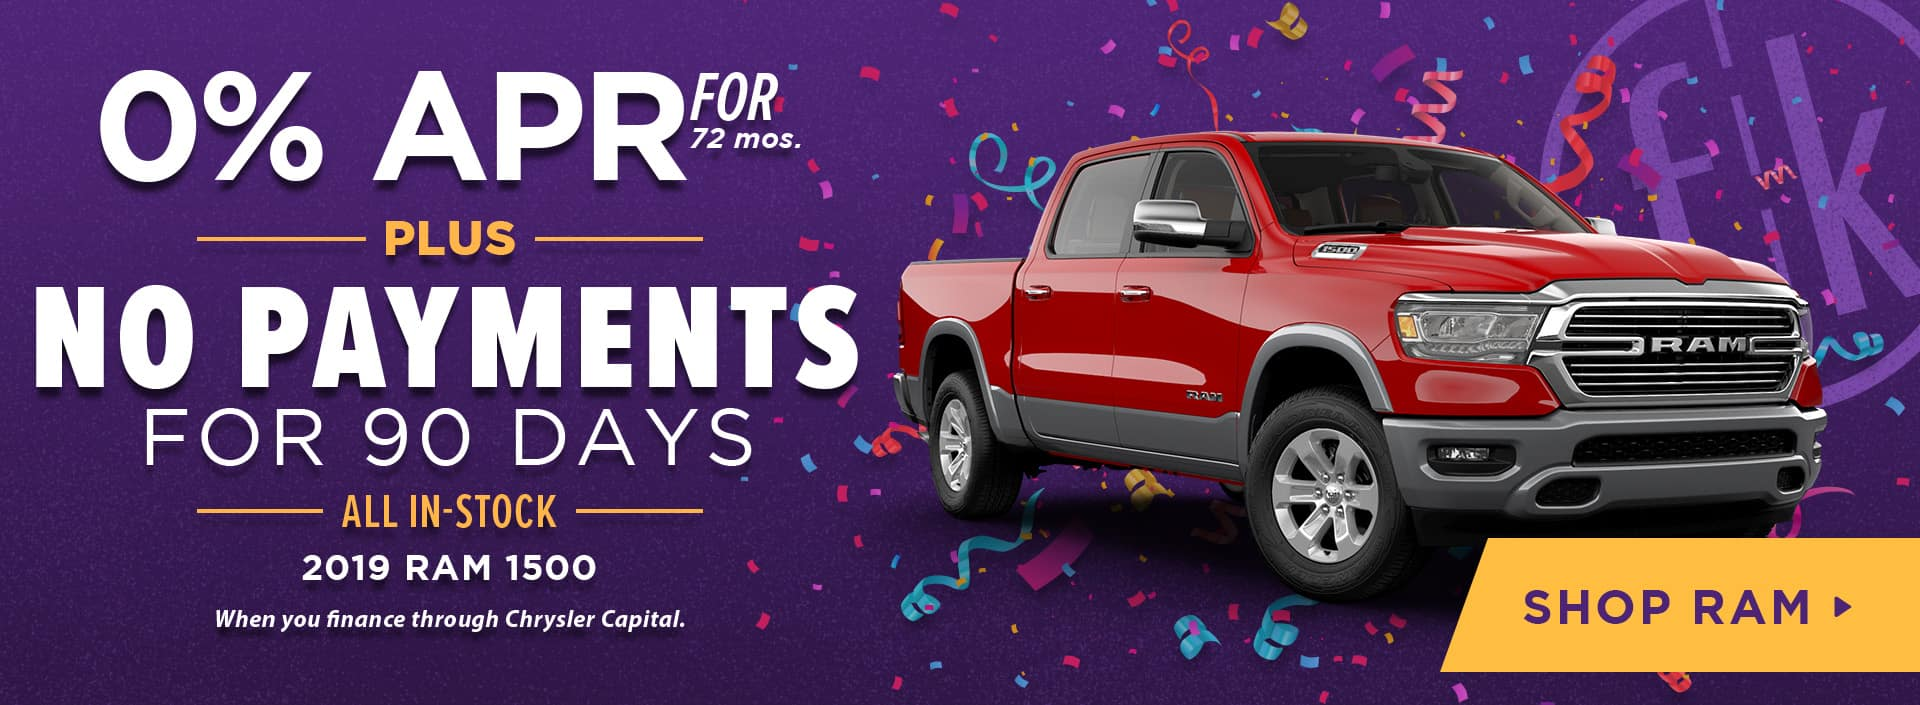 0% for 72 PLUS No Payments for 90 Days 2019 RAM 1500